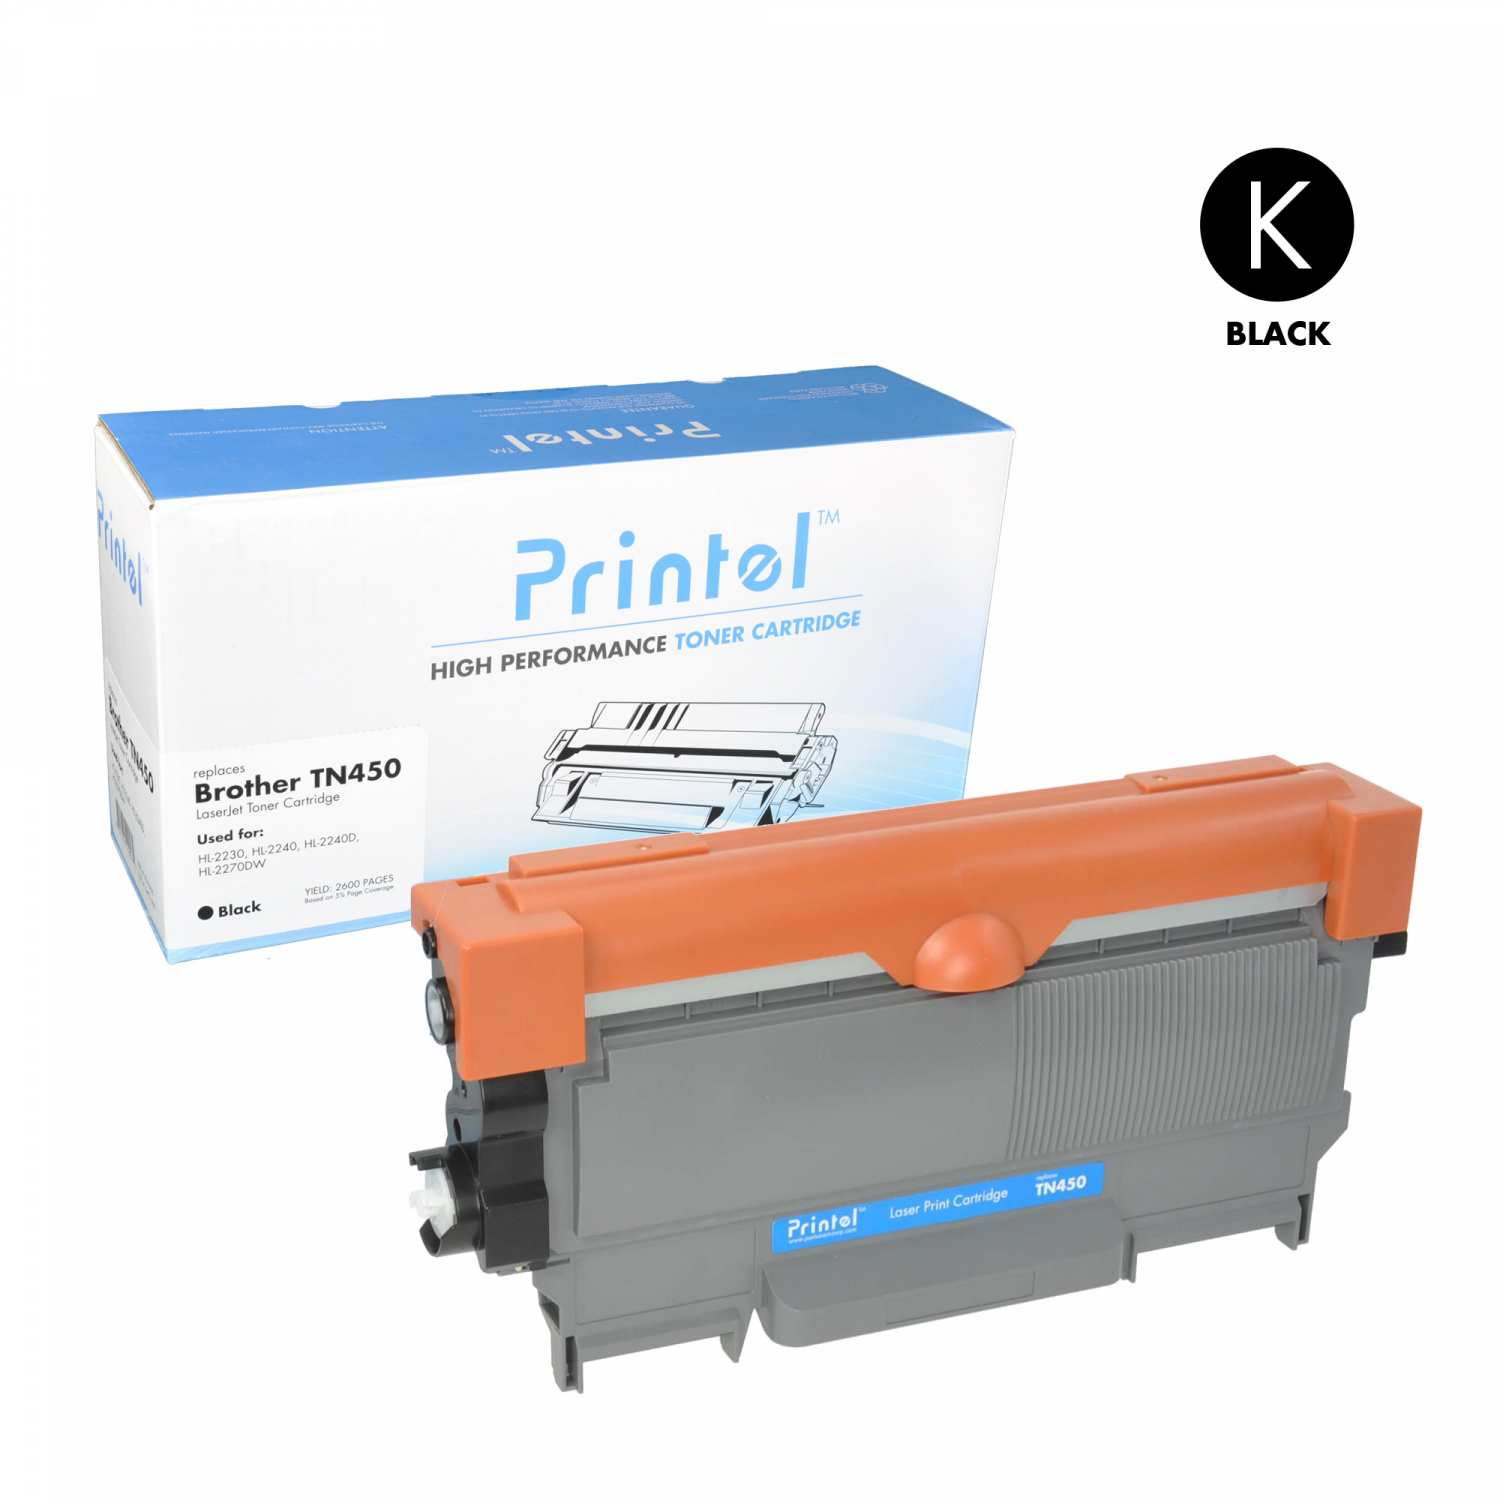 Replacement Toner Cartridge for  Brother TN450  Black, High Yield